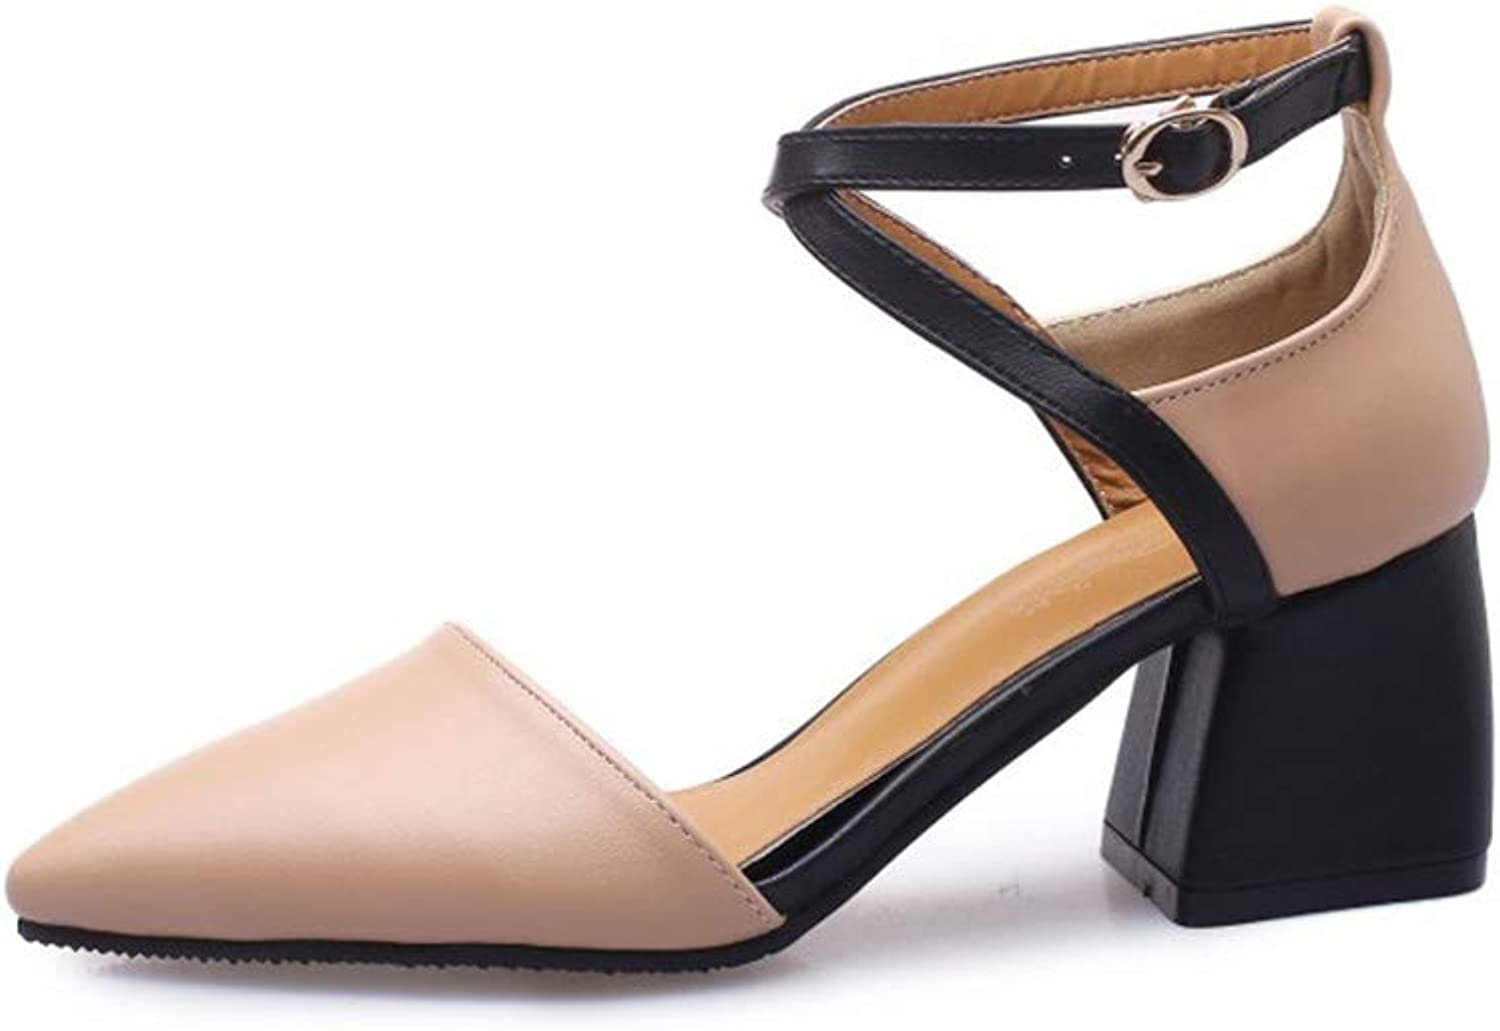 Sandals for Women Artificial PU Thick with Pointed high Heels Ankle Strap with Solid color Casual Sandals